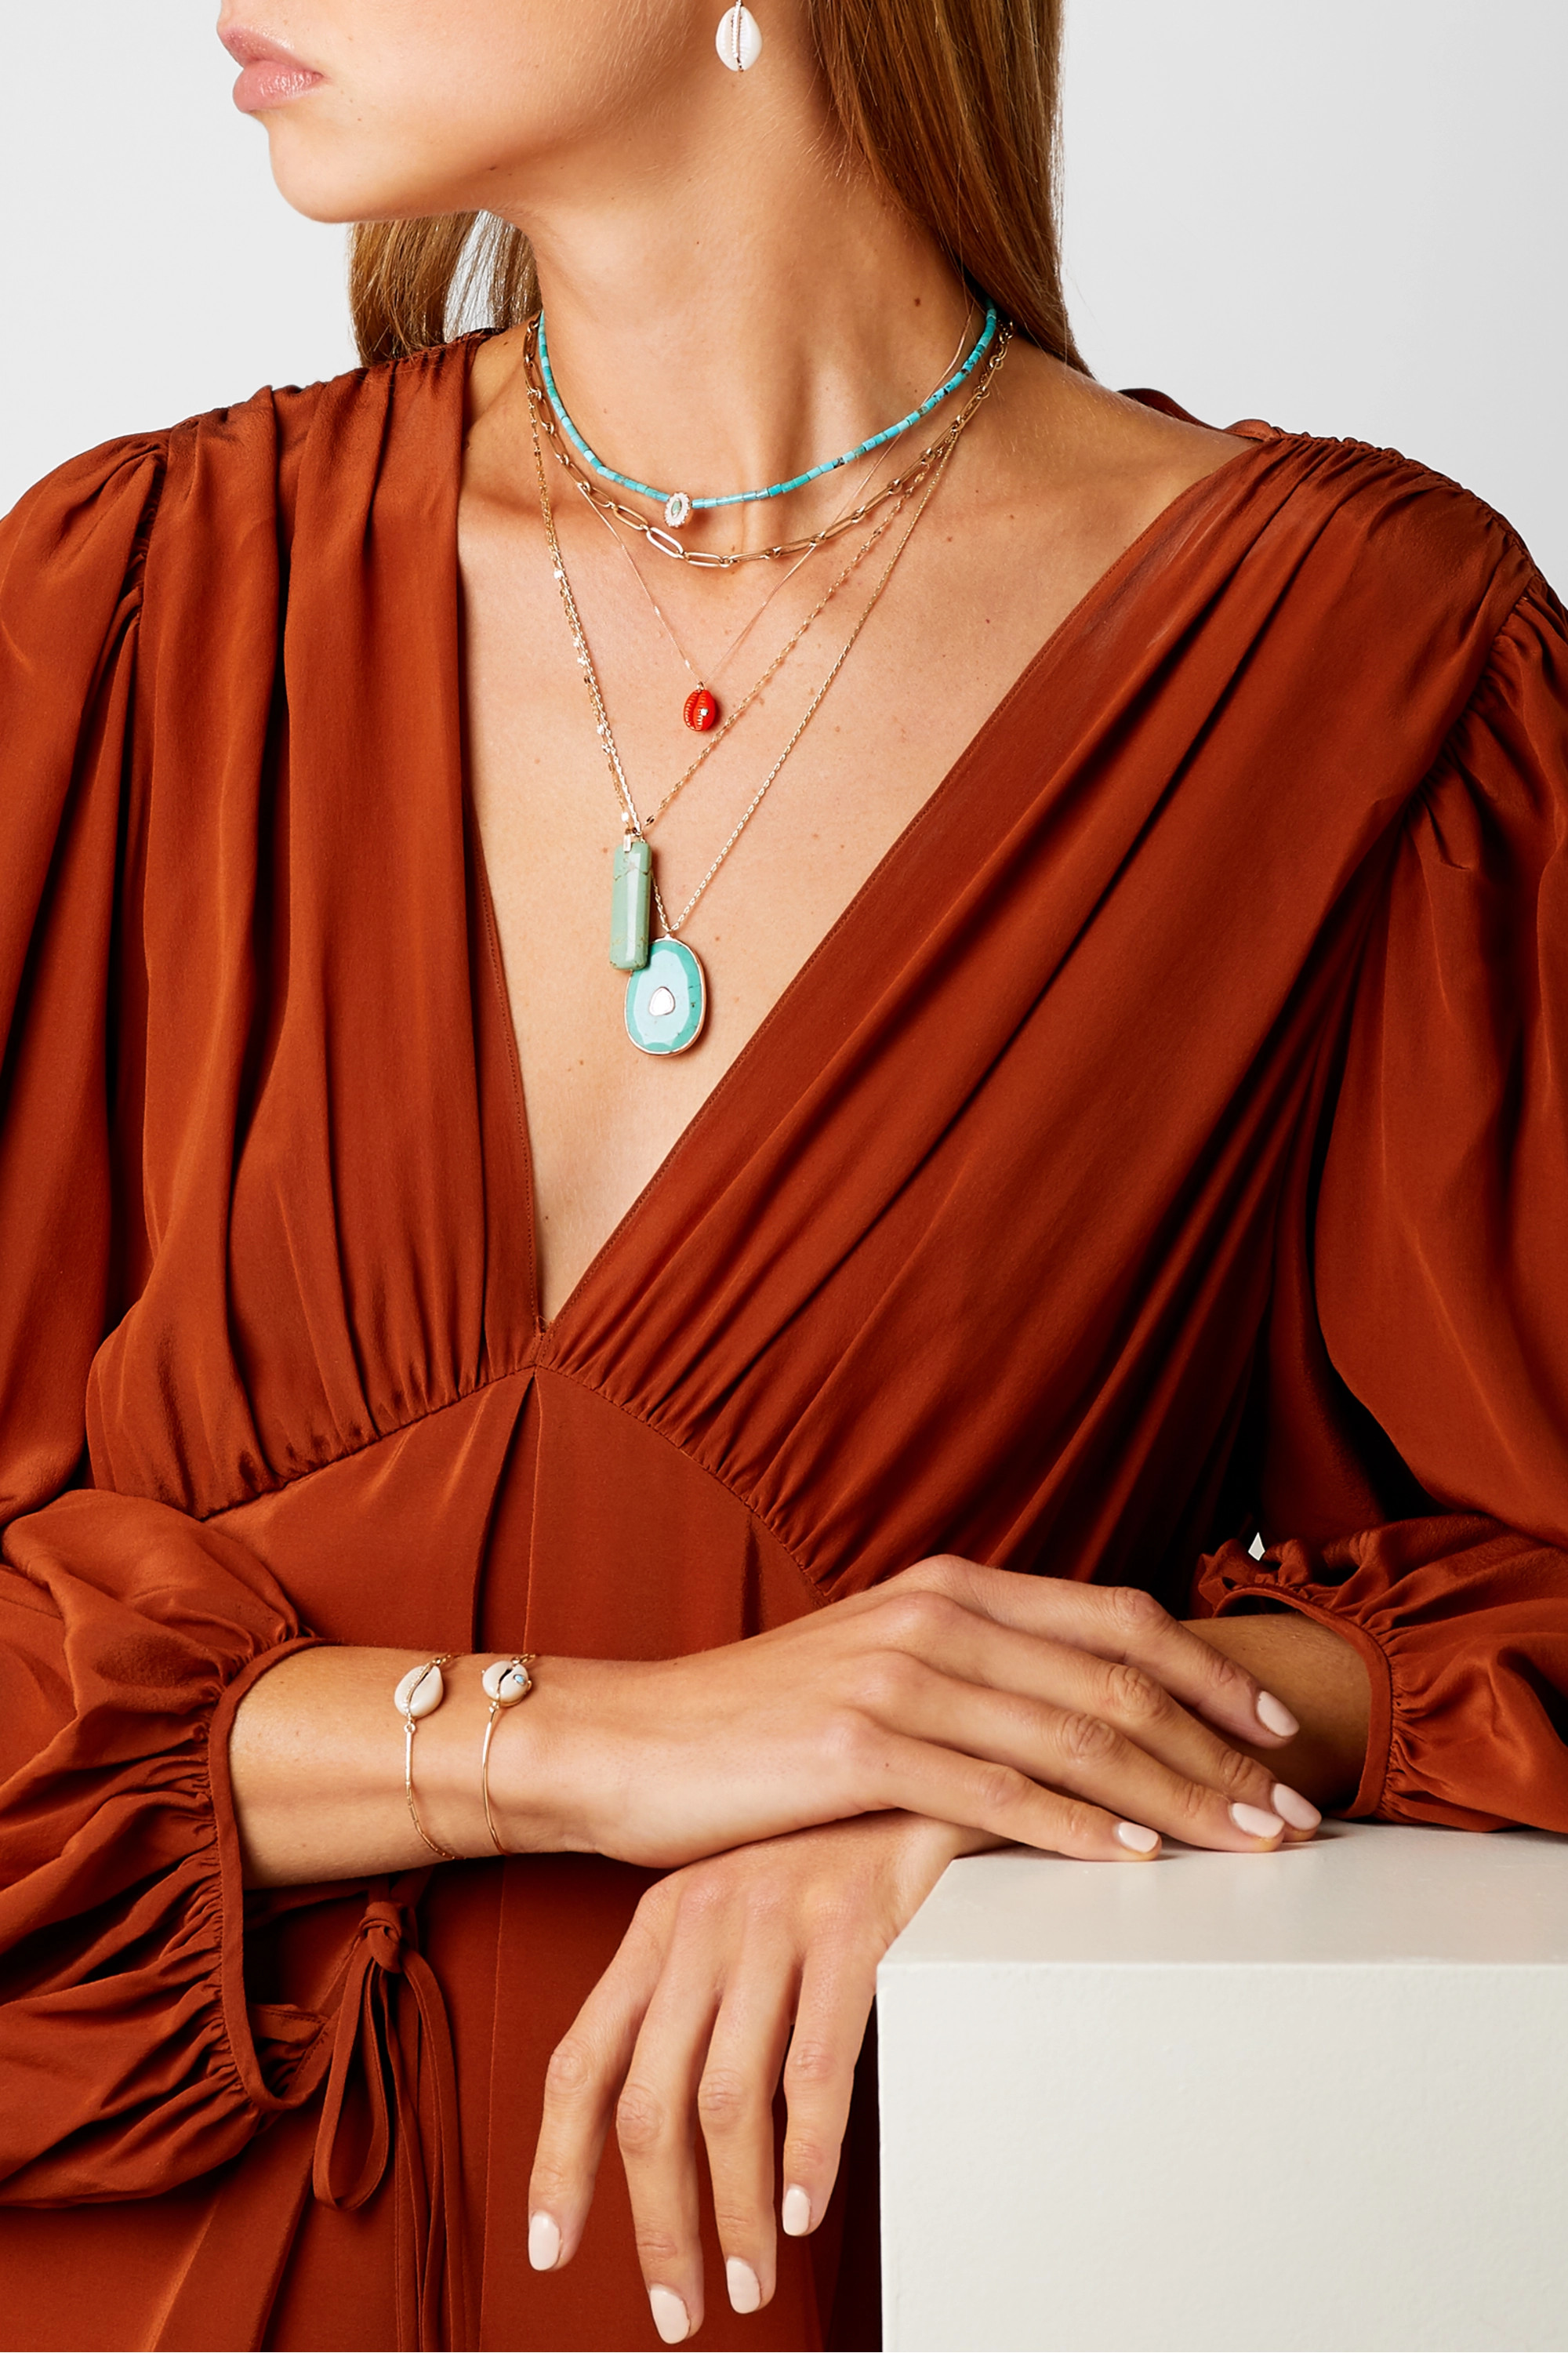 Pascale Monvoisin Cauri N°2 9-karat rose and yellow gold, resin and turquoise necklace